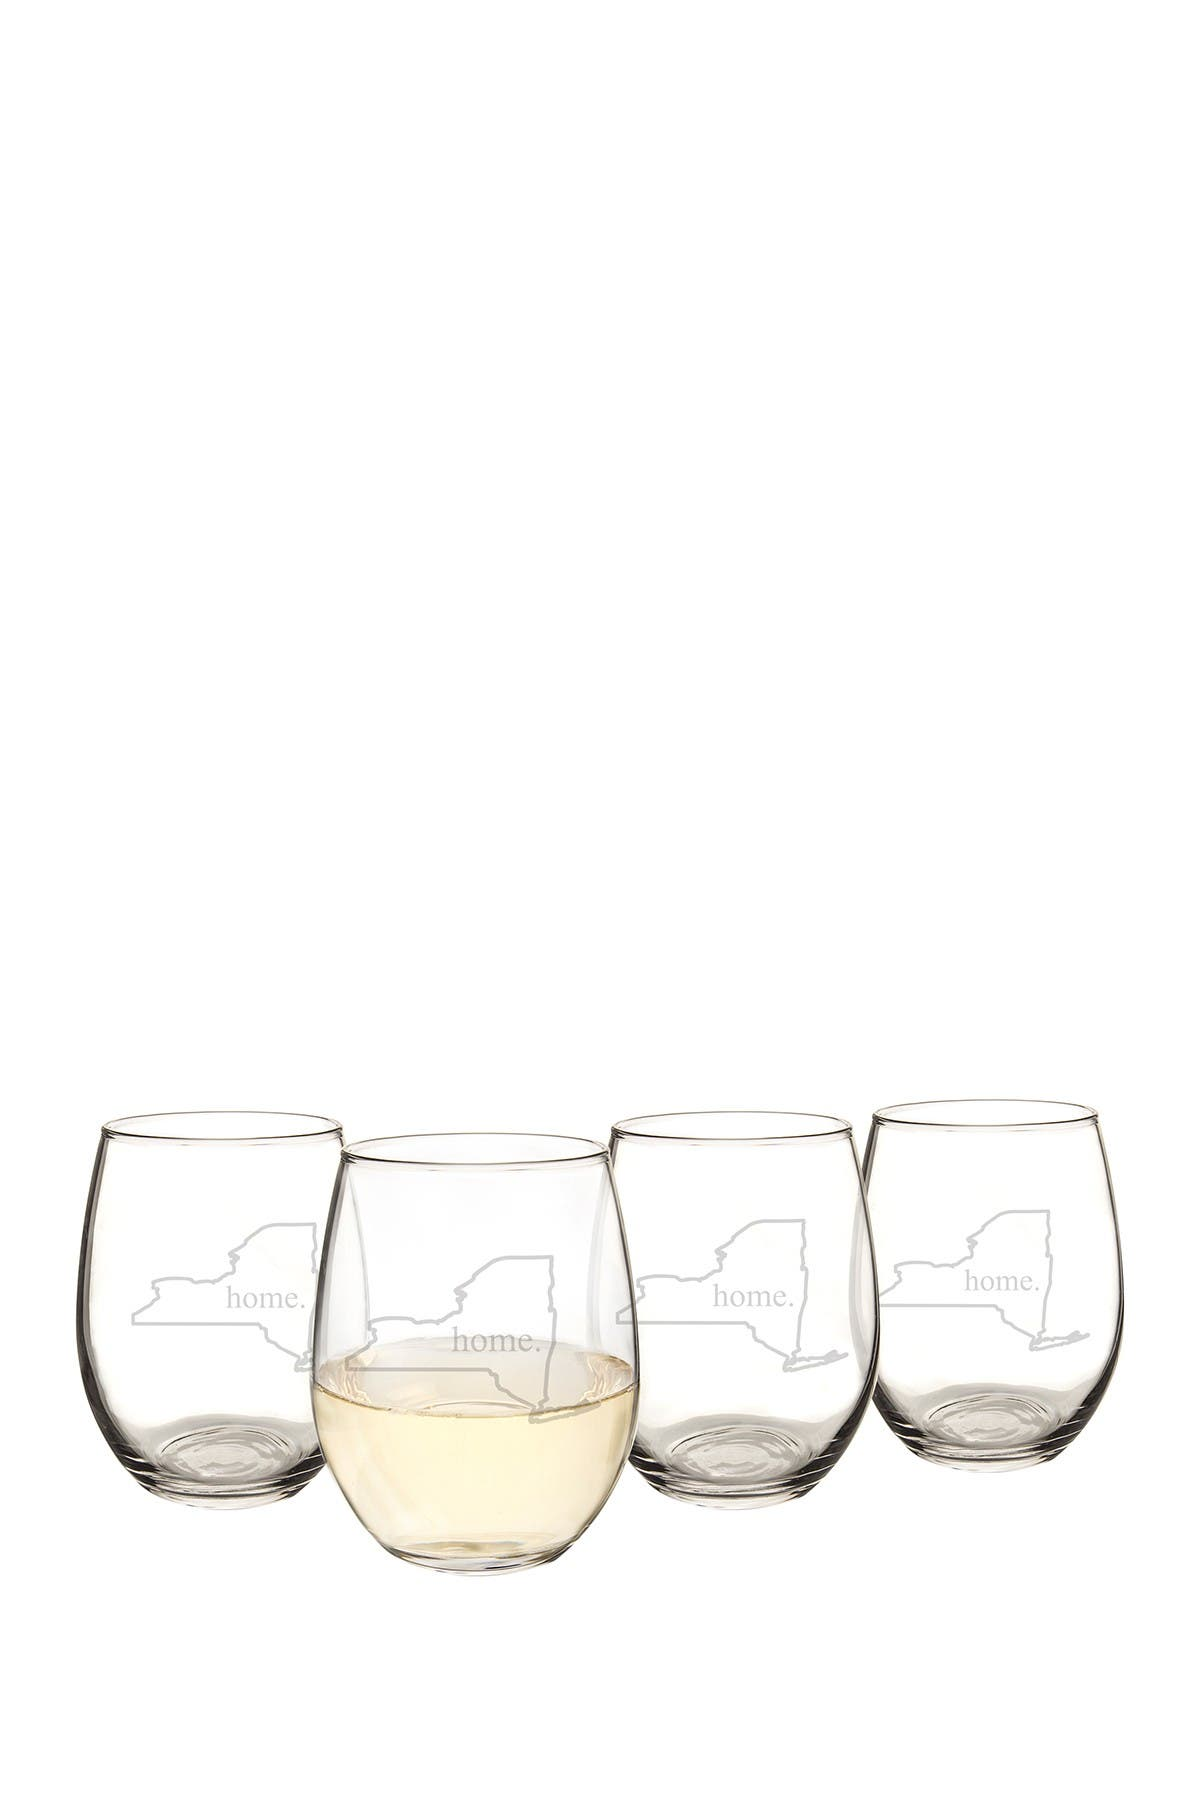 Image of Cathy's Concepts Home State 21oz. Stemless Wine Glass - Set of 4